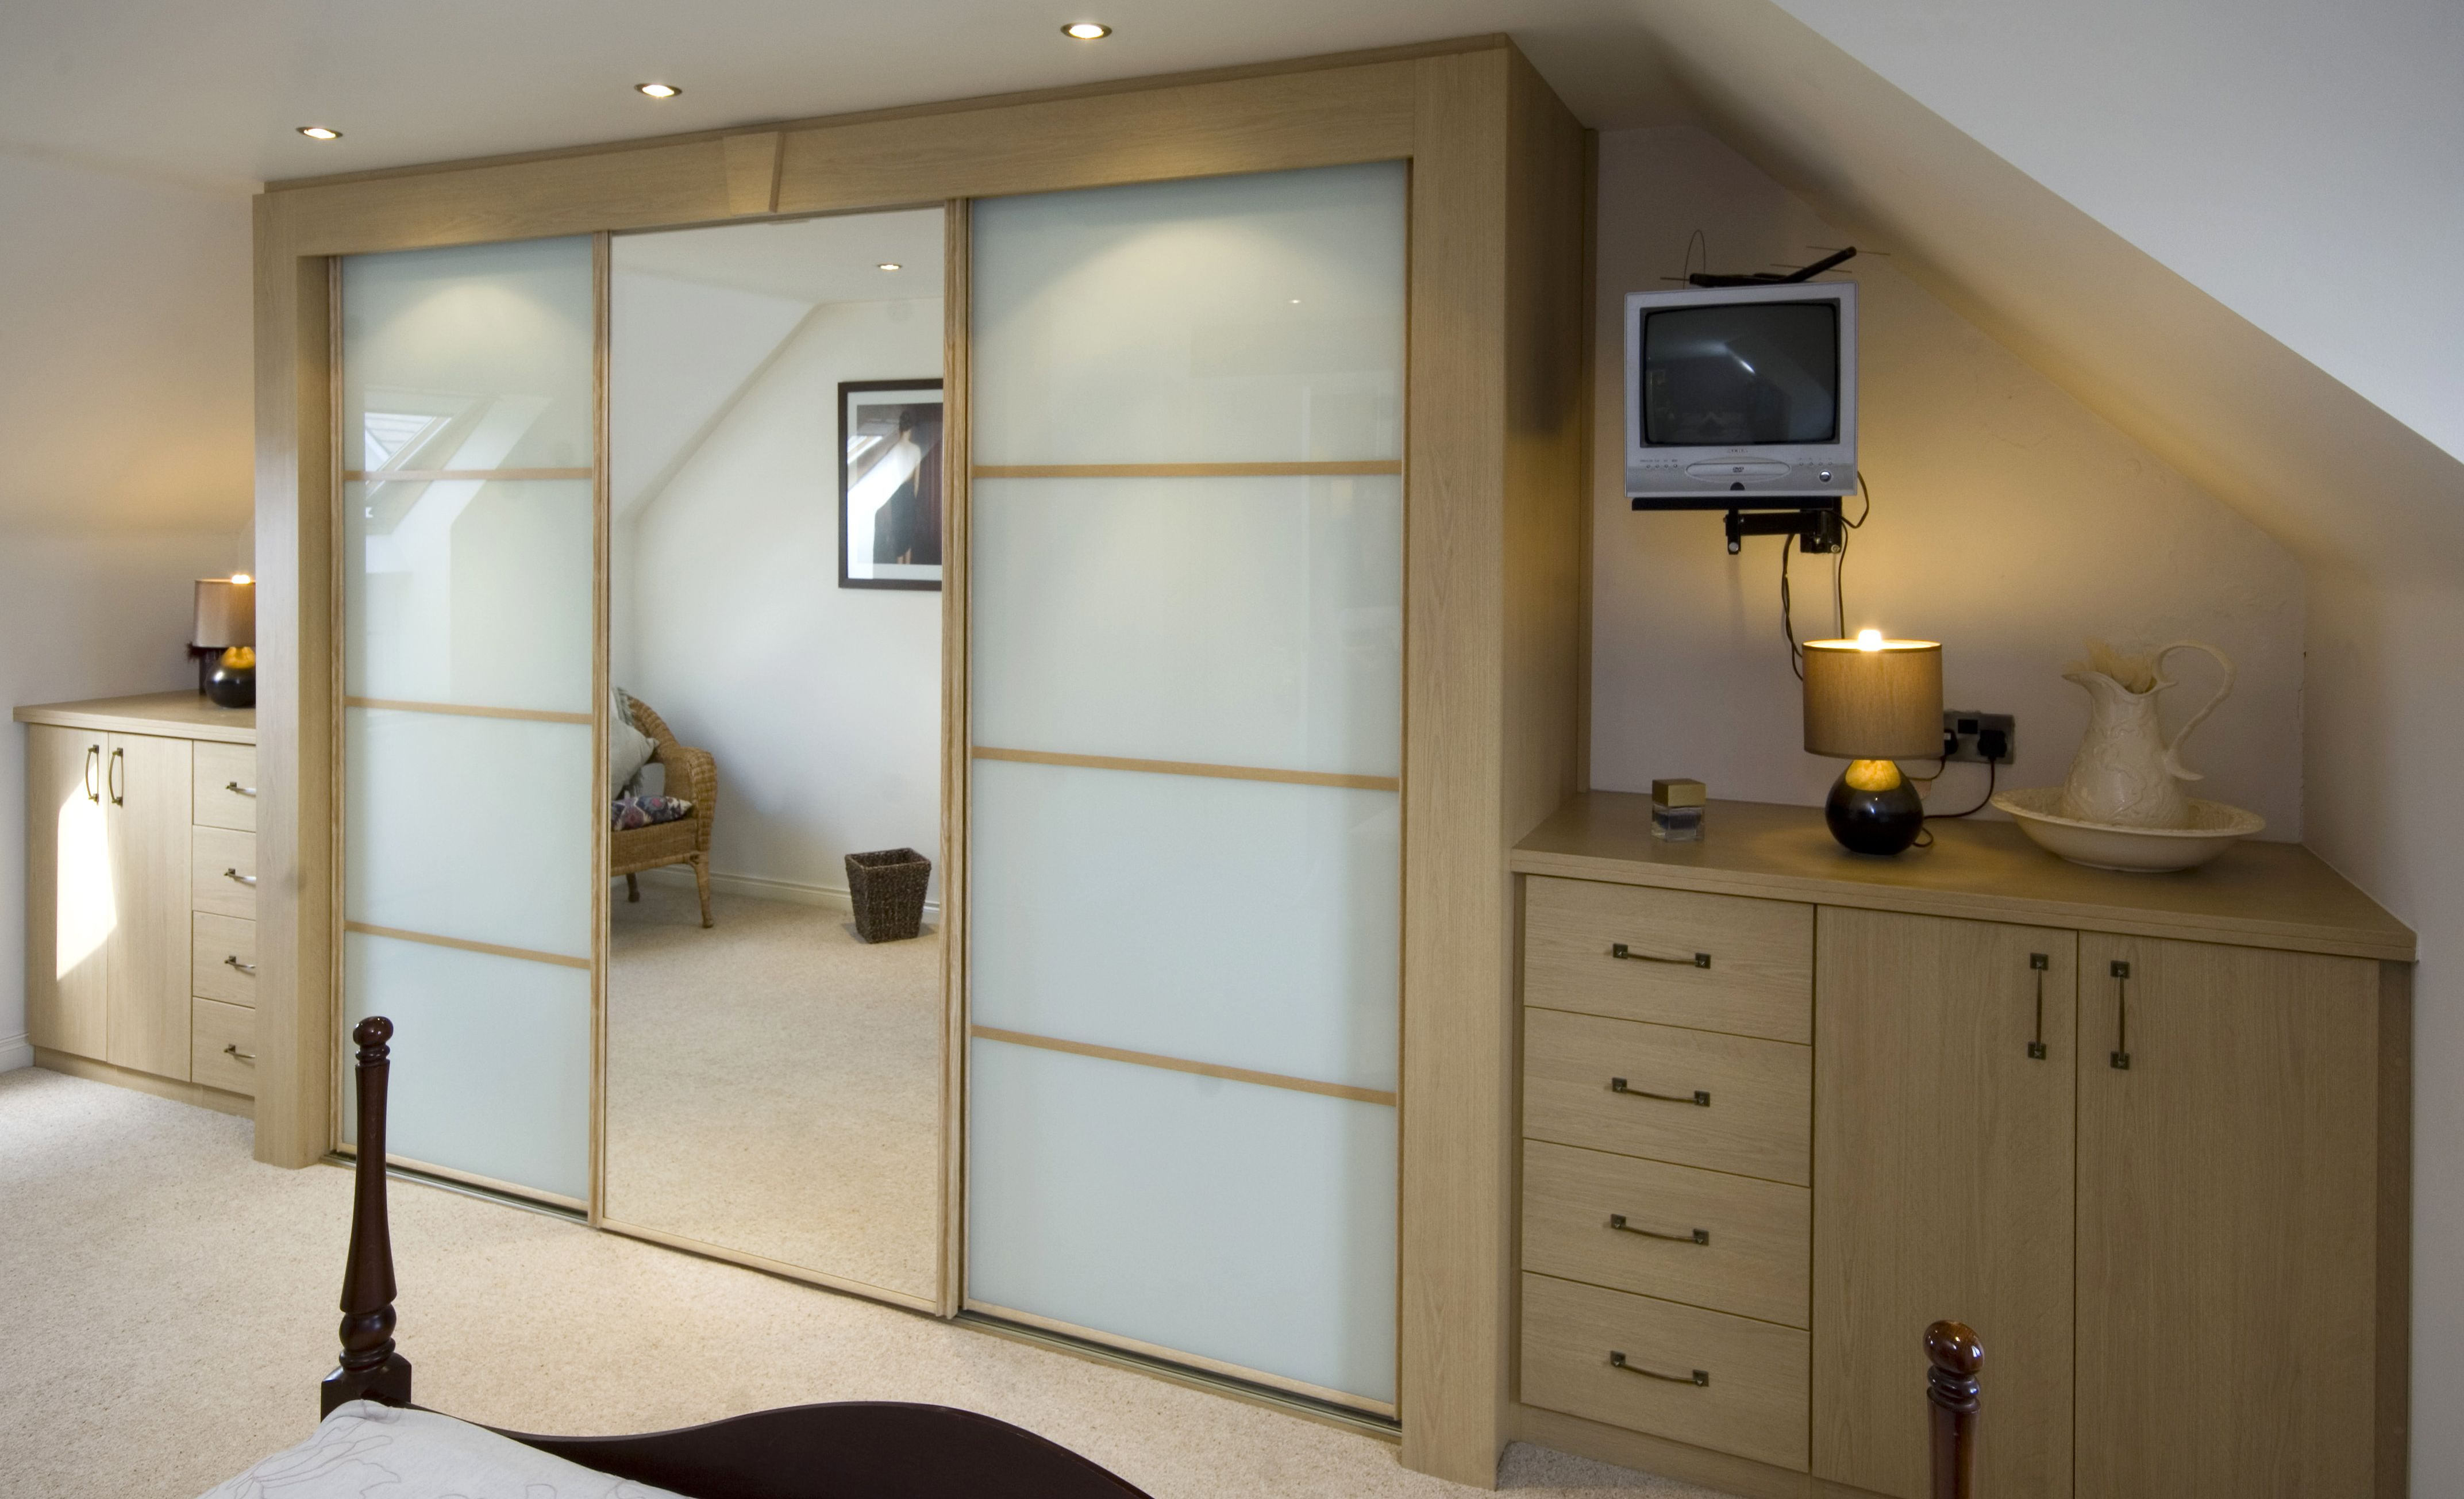 Oak sliding wardrobe and furniture sliding wardrobe in mirror and ...